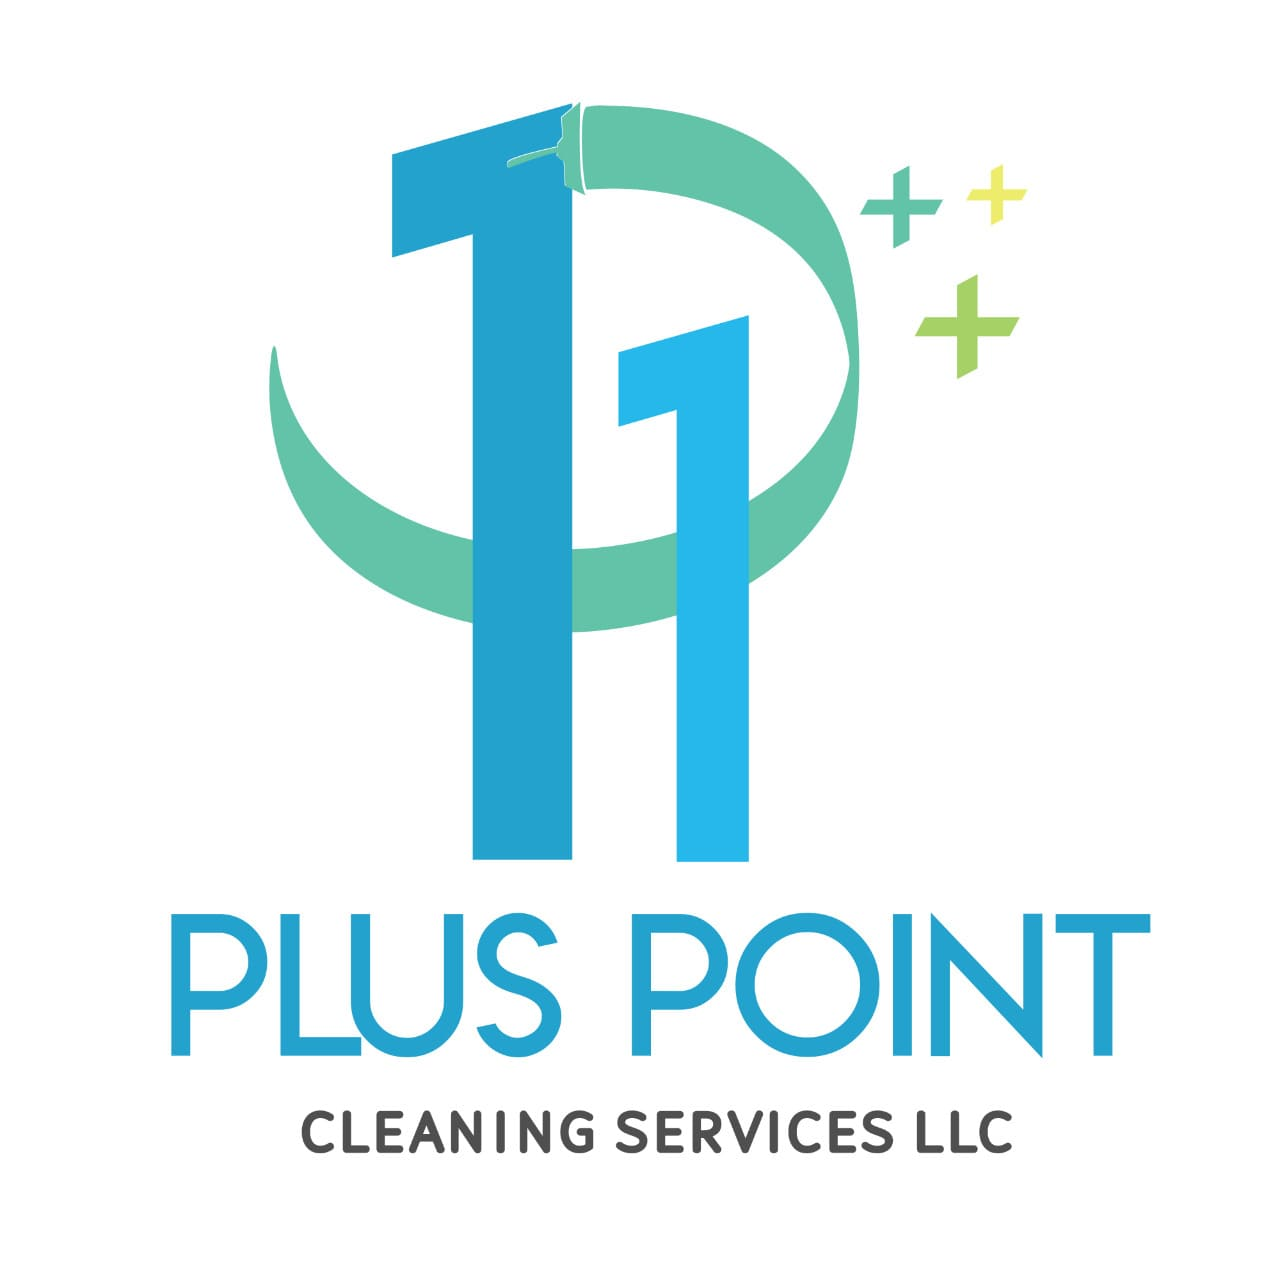 Plus Point Cleaning Services LLC